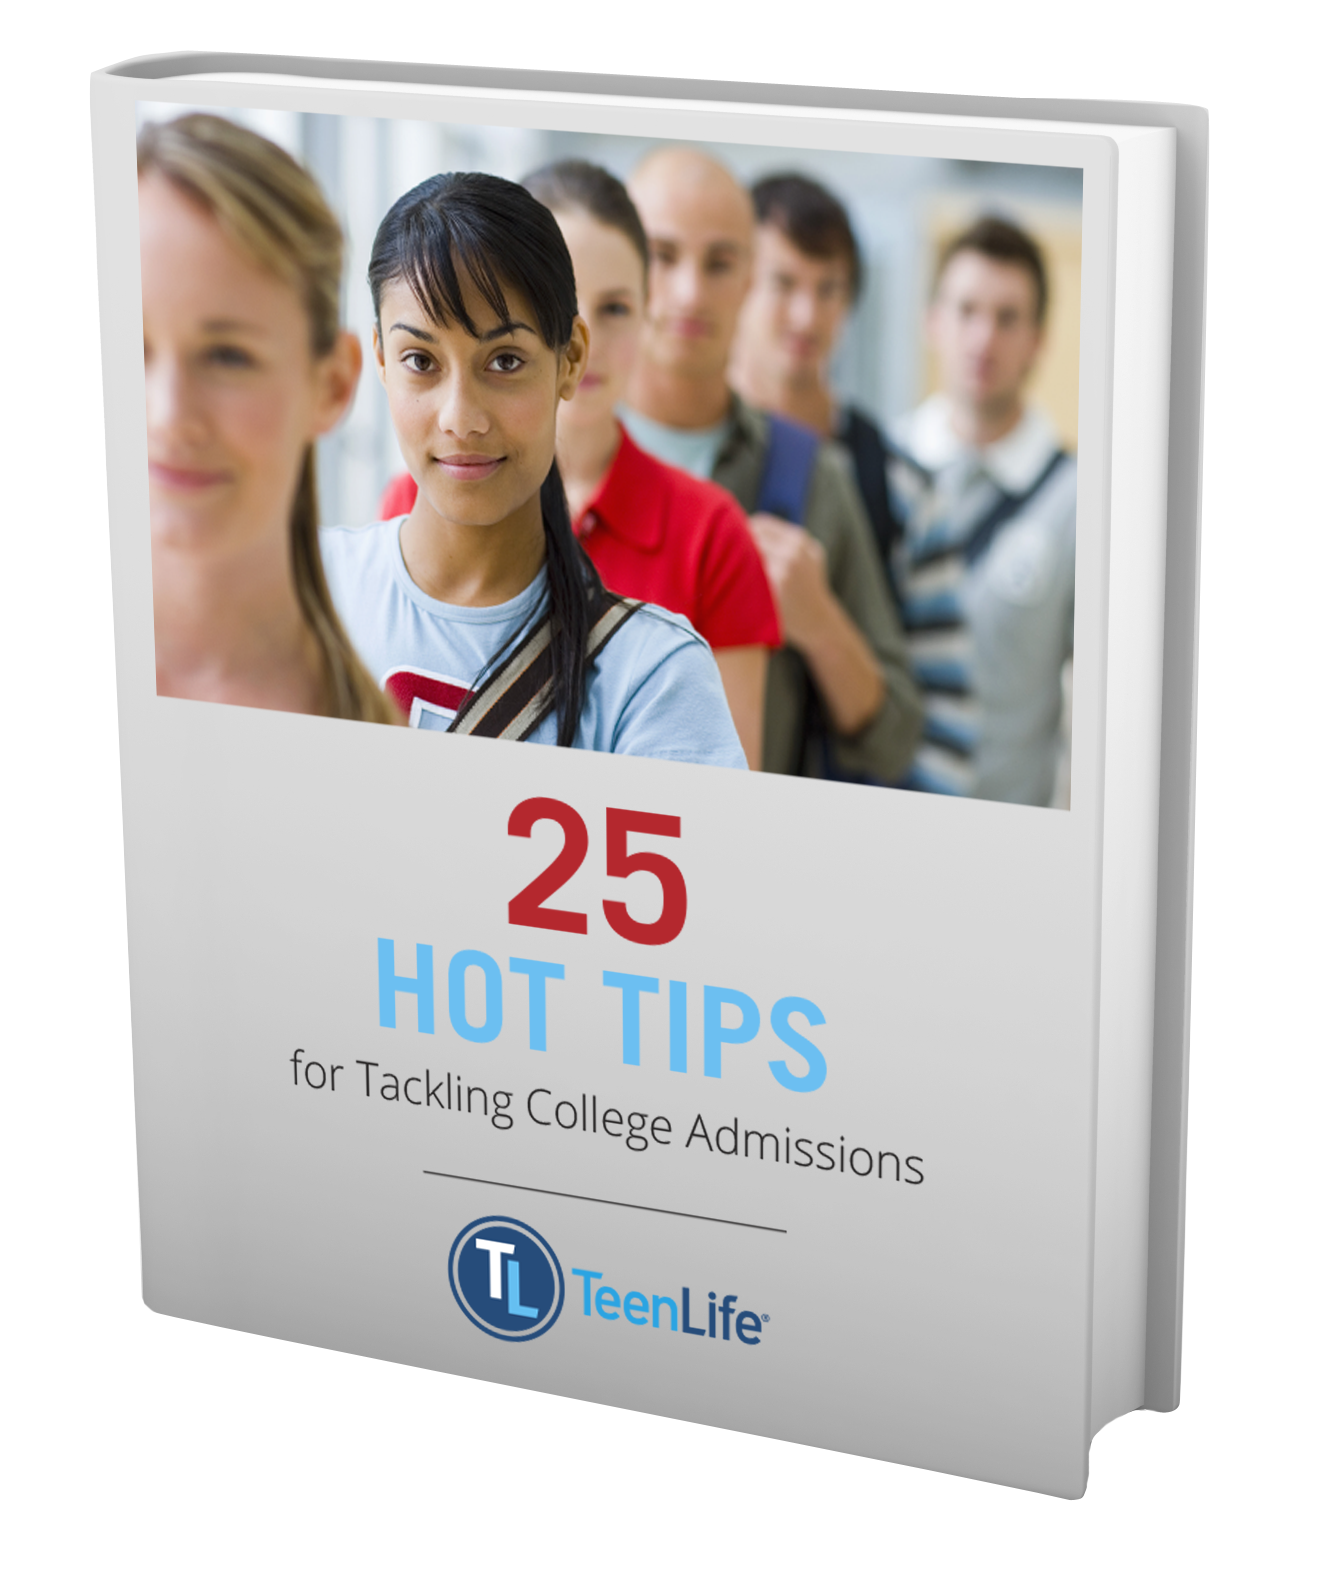 25 Hot Tips for Tackling College Admissions-TeenLife